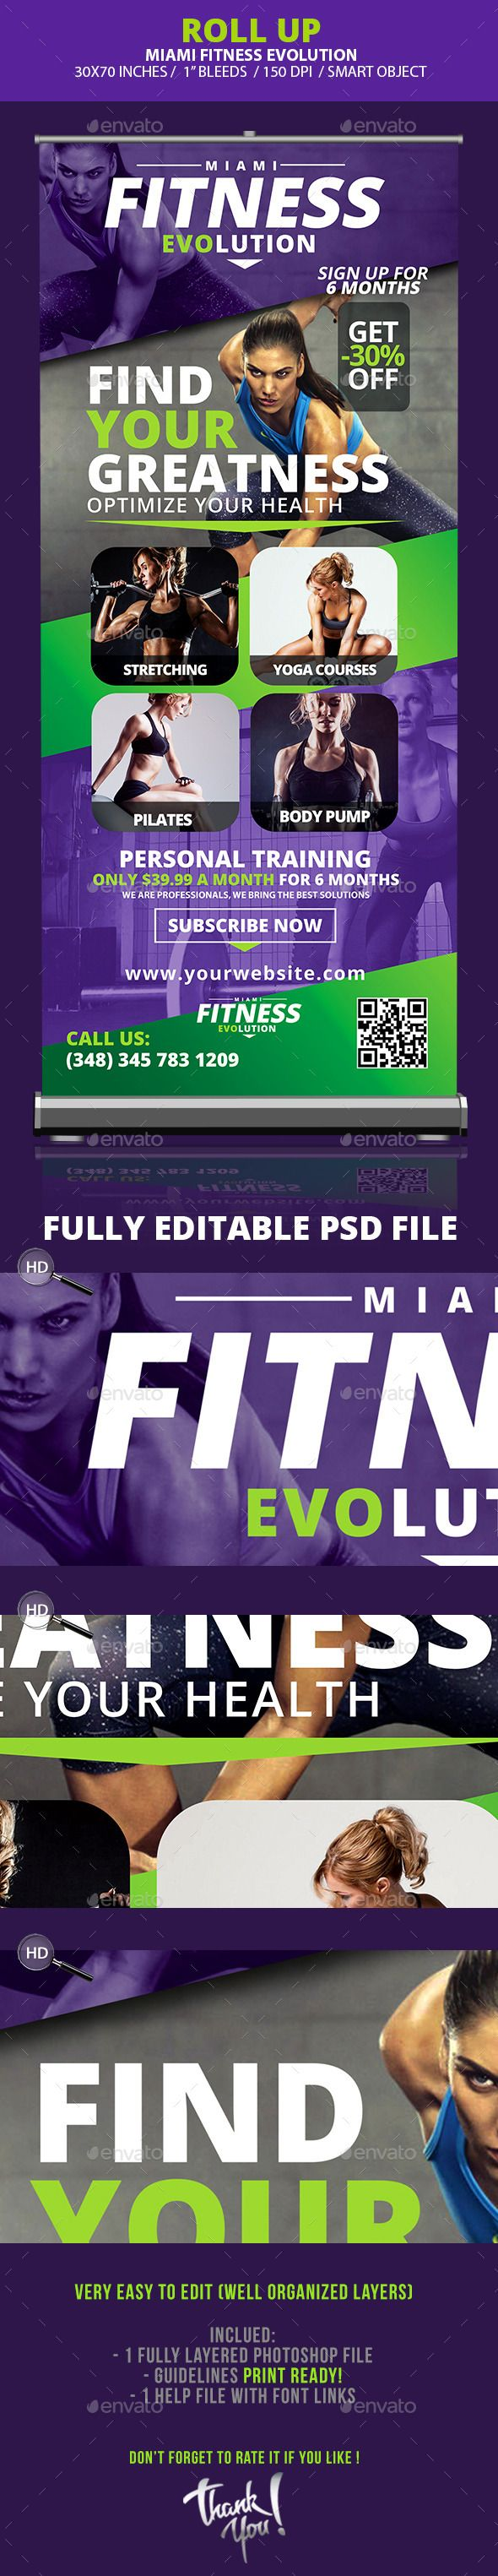 Fitness Evolution Roll-up Banners Template #design Download: http://graphicriver.net/item/fitness-evolution-rollup-banners-/10359541?ref=ksioks